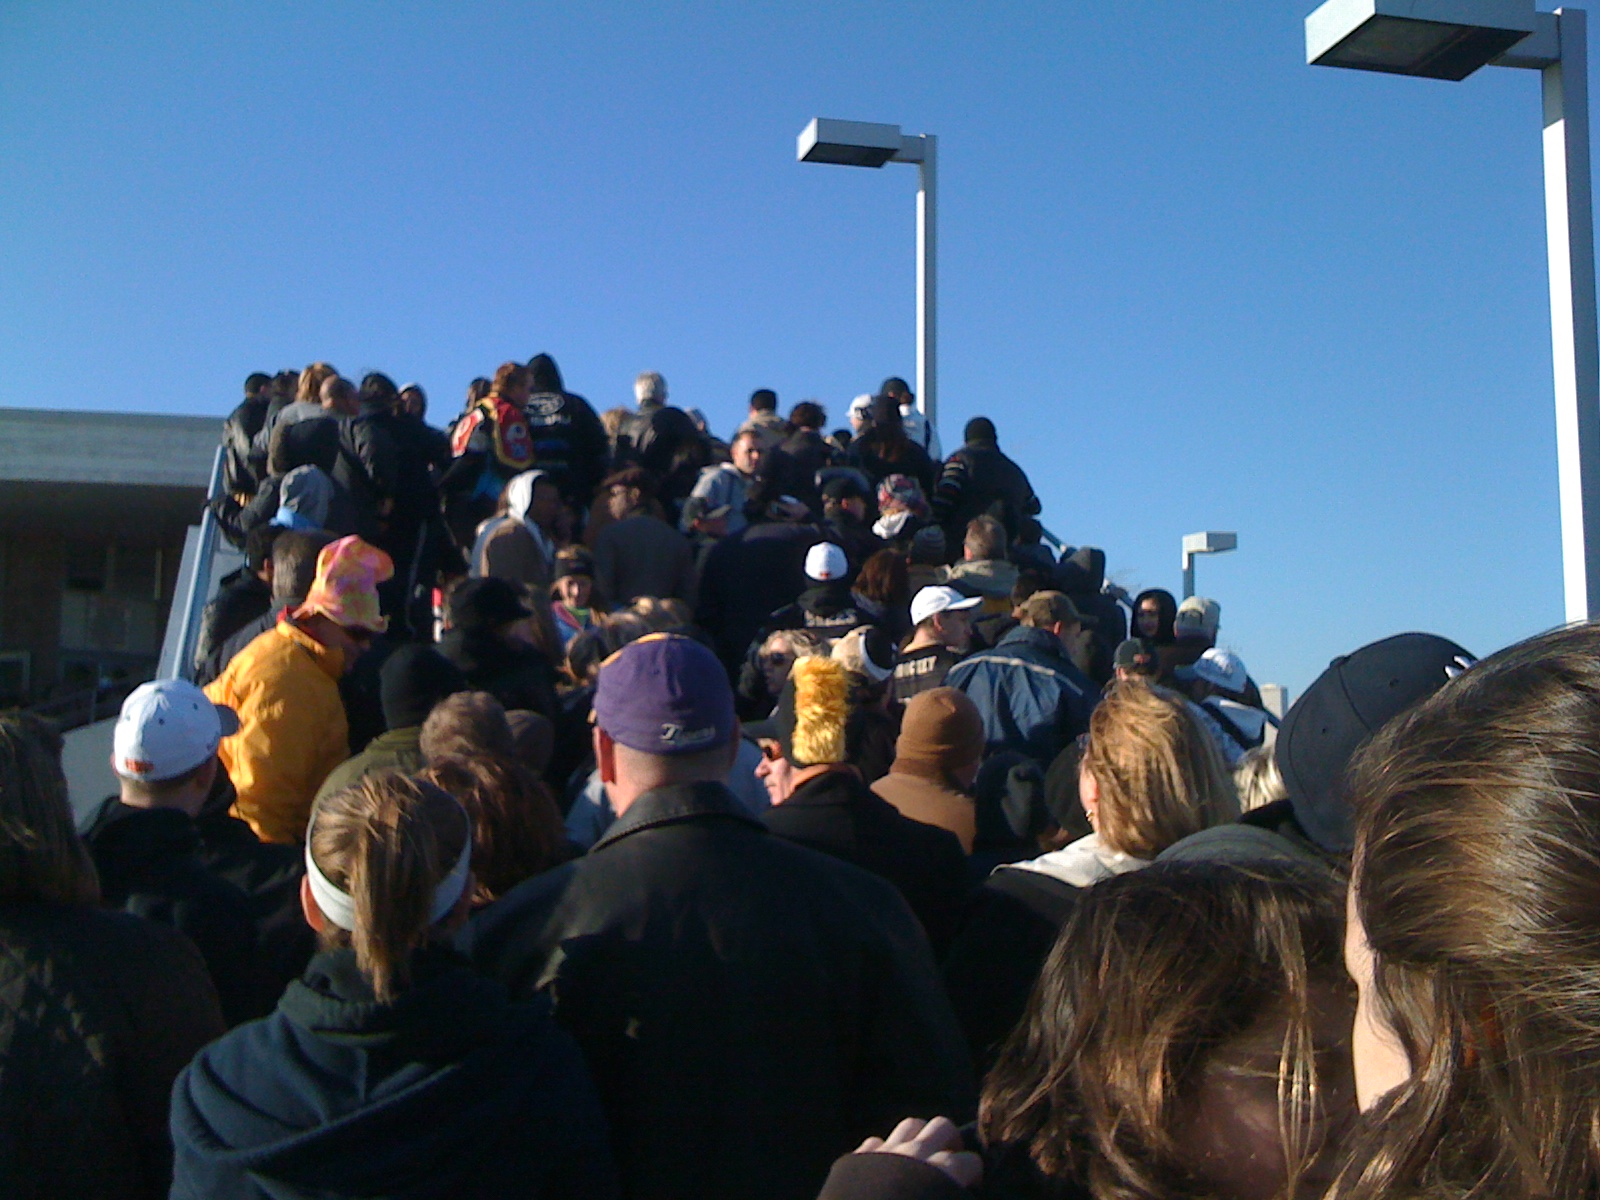 Waiting for the ferry and the New Orleans Super Bowl Parade